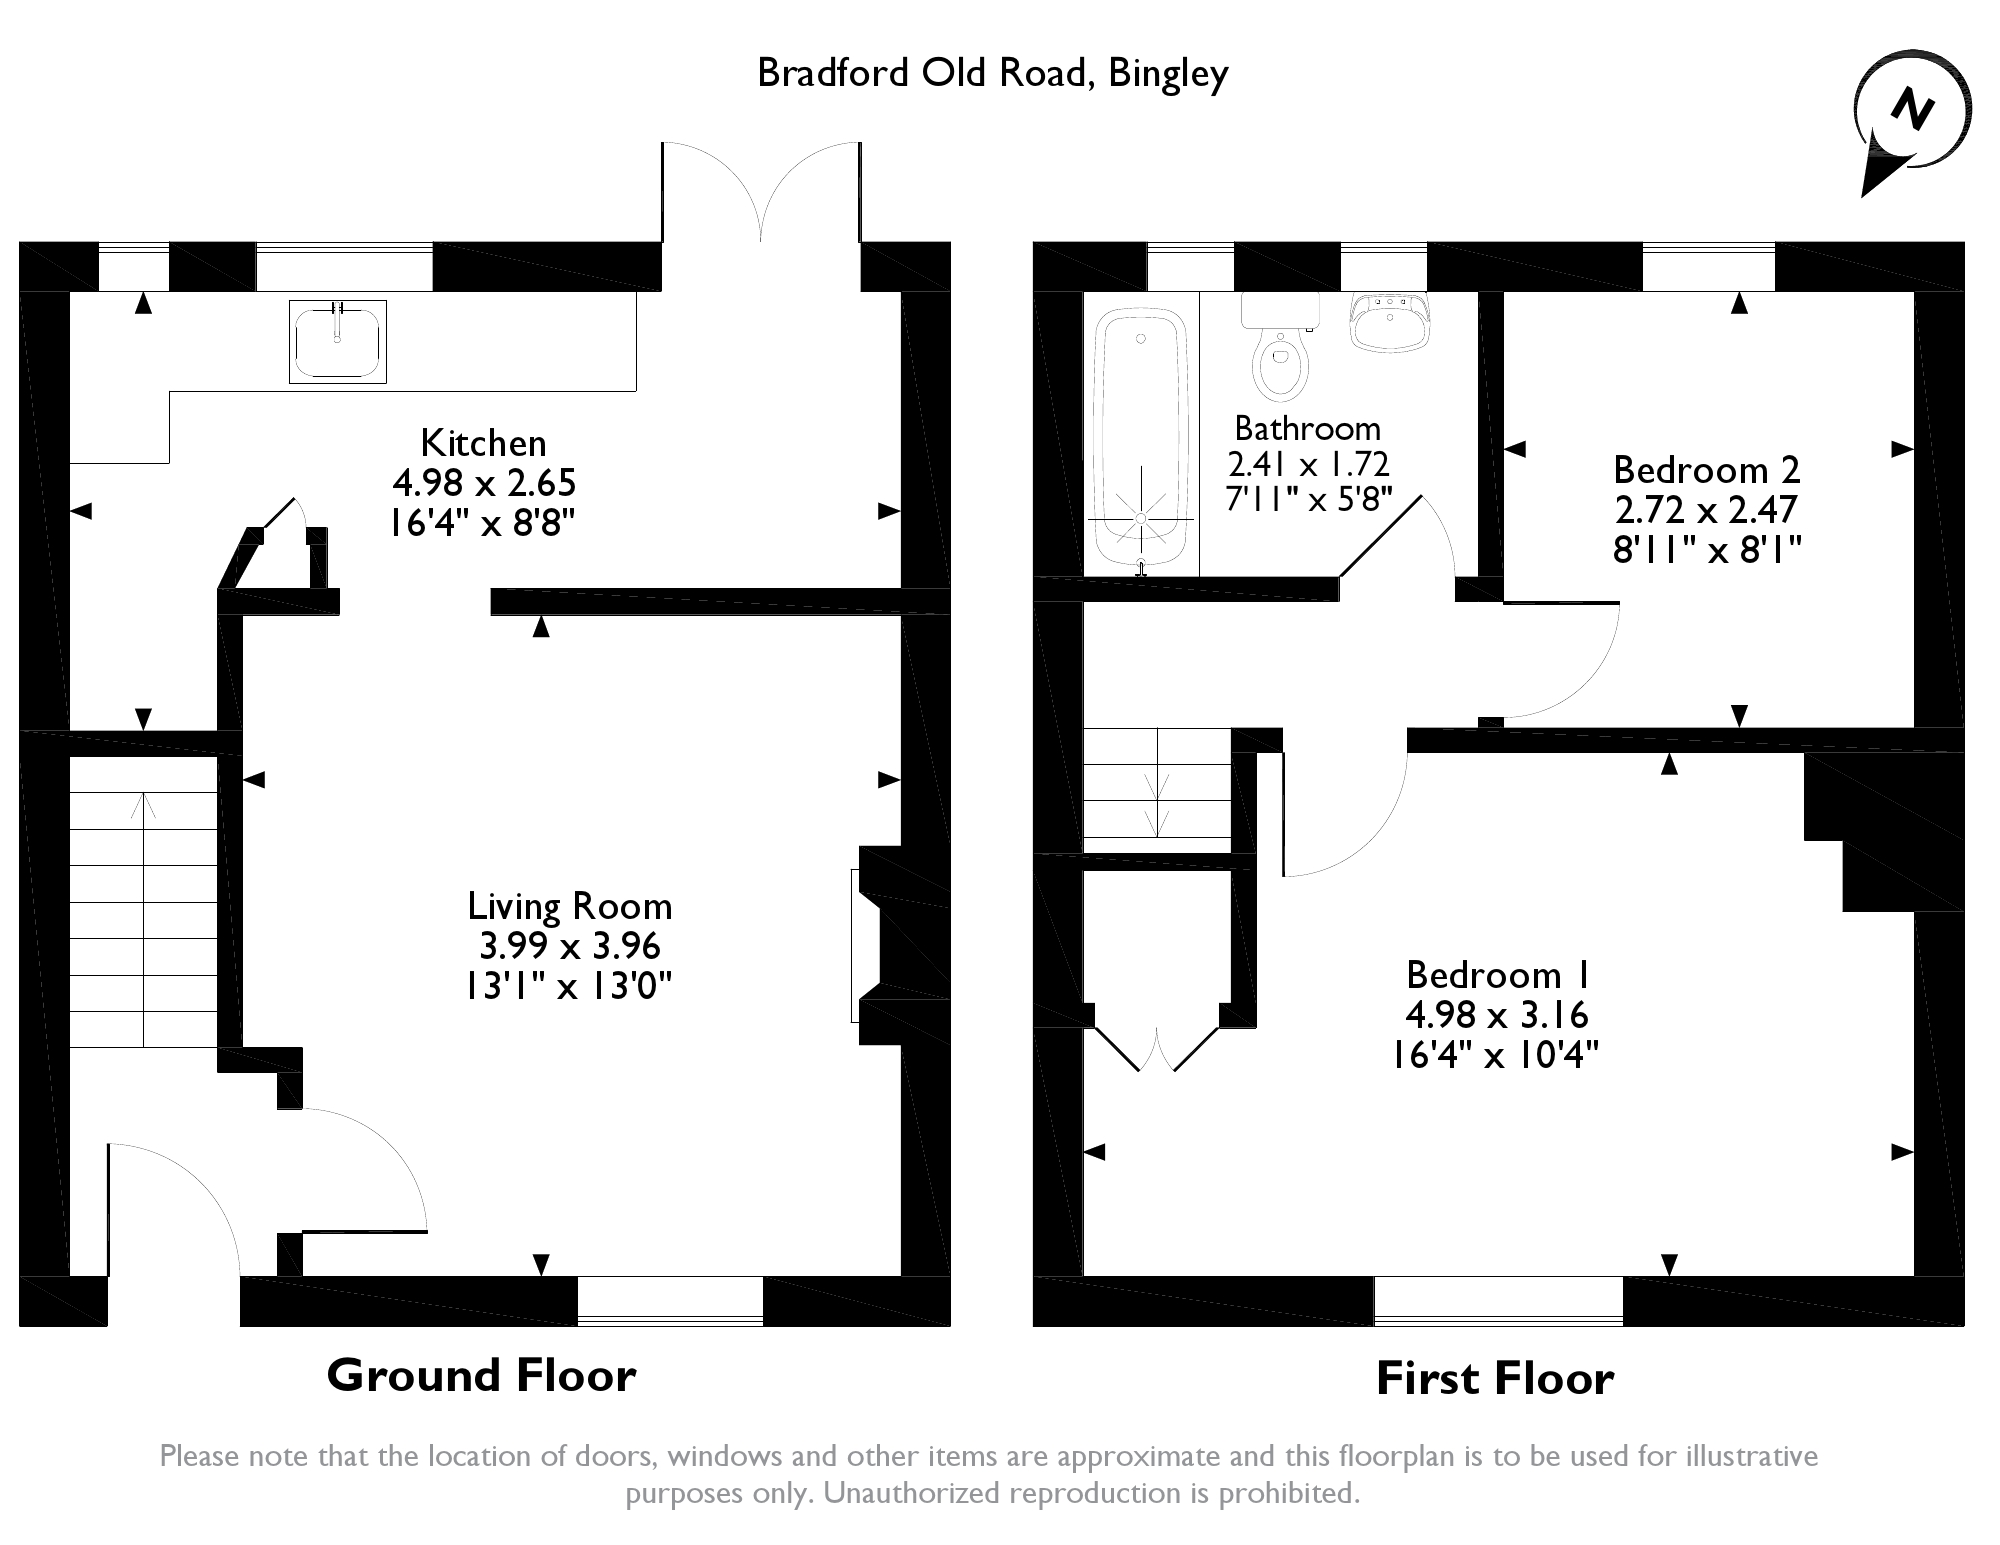 Bradford Old Road, Cottingley, BD16 floor plan